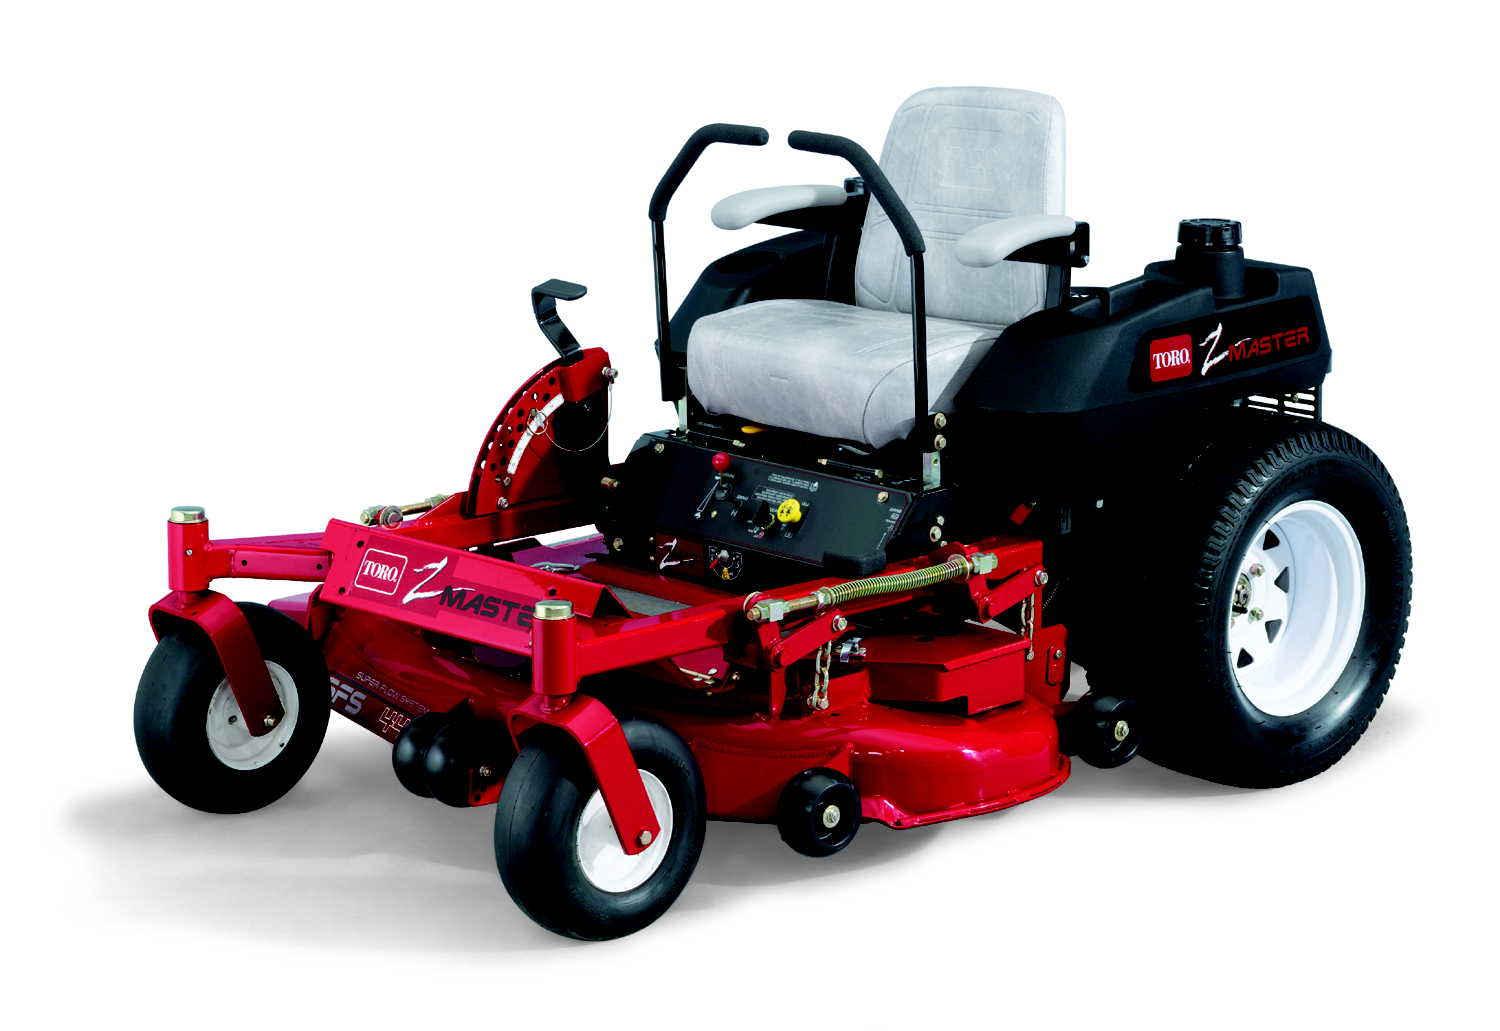 Picture of Recalled Lawn Mower